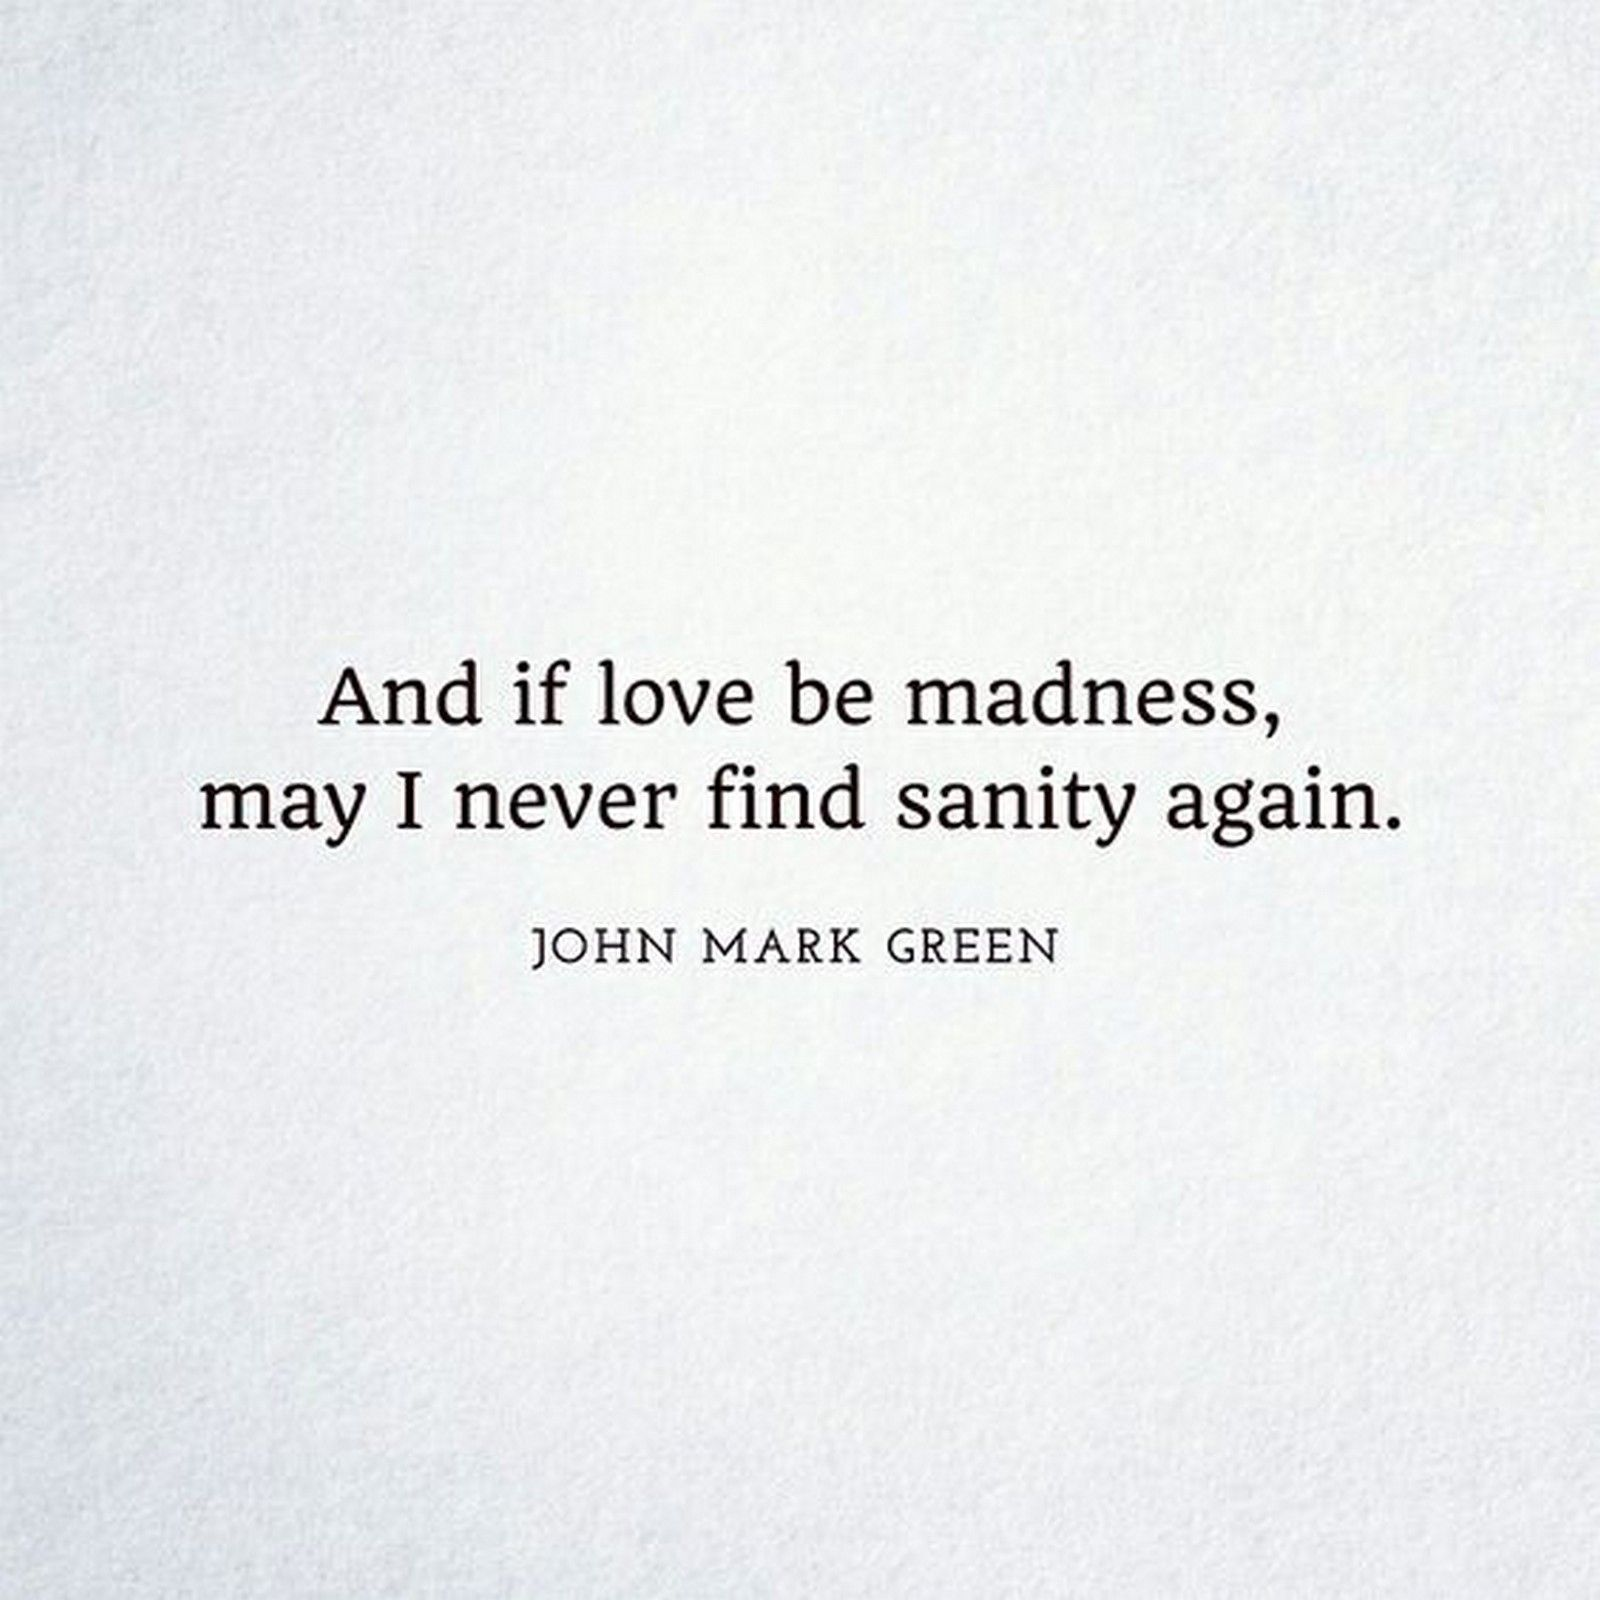 55 Romantic Quotes And If Love Be Madness May I Never Find Sanity Again John Mark Green Sappy Love Quotes Crazy Love Quotes Falling In Love Quotes